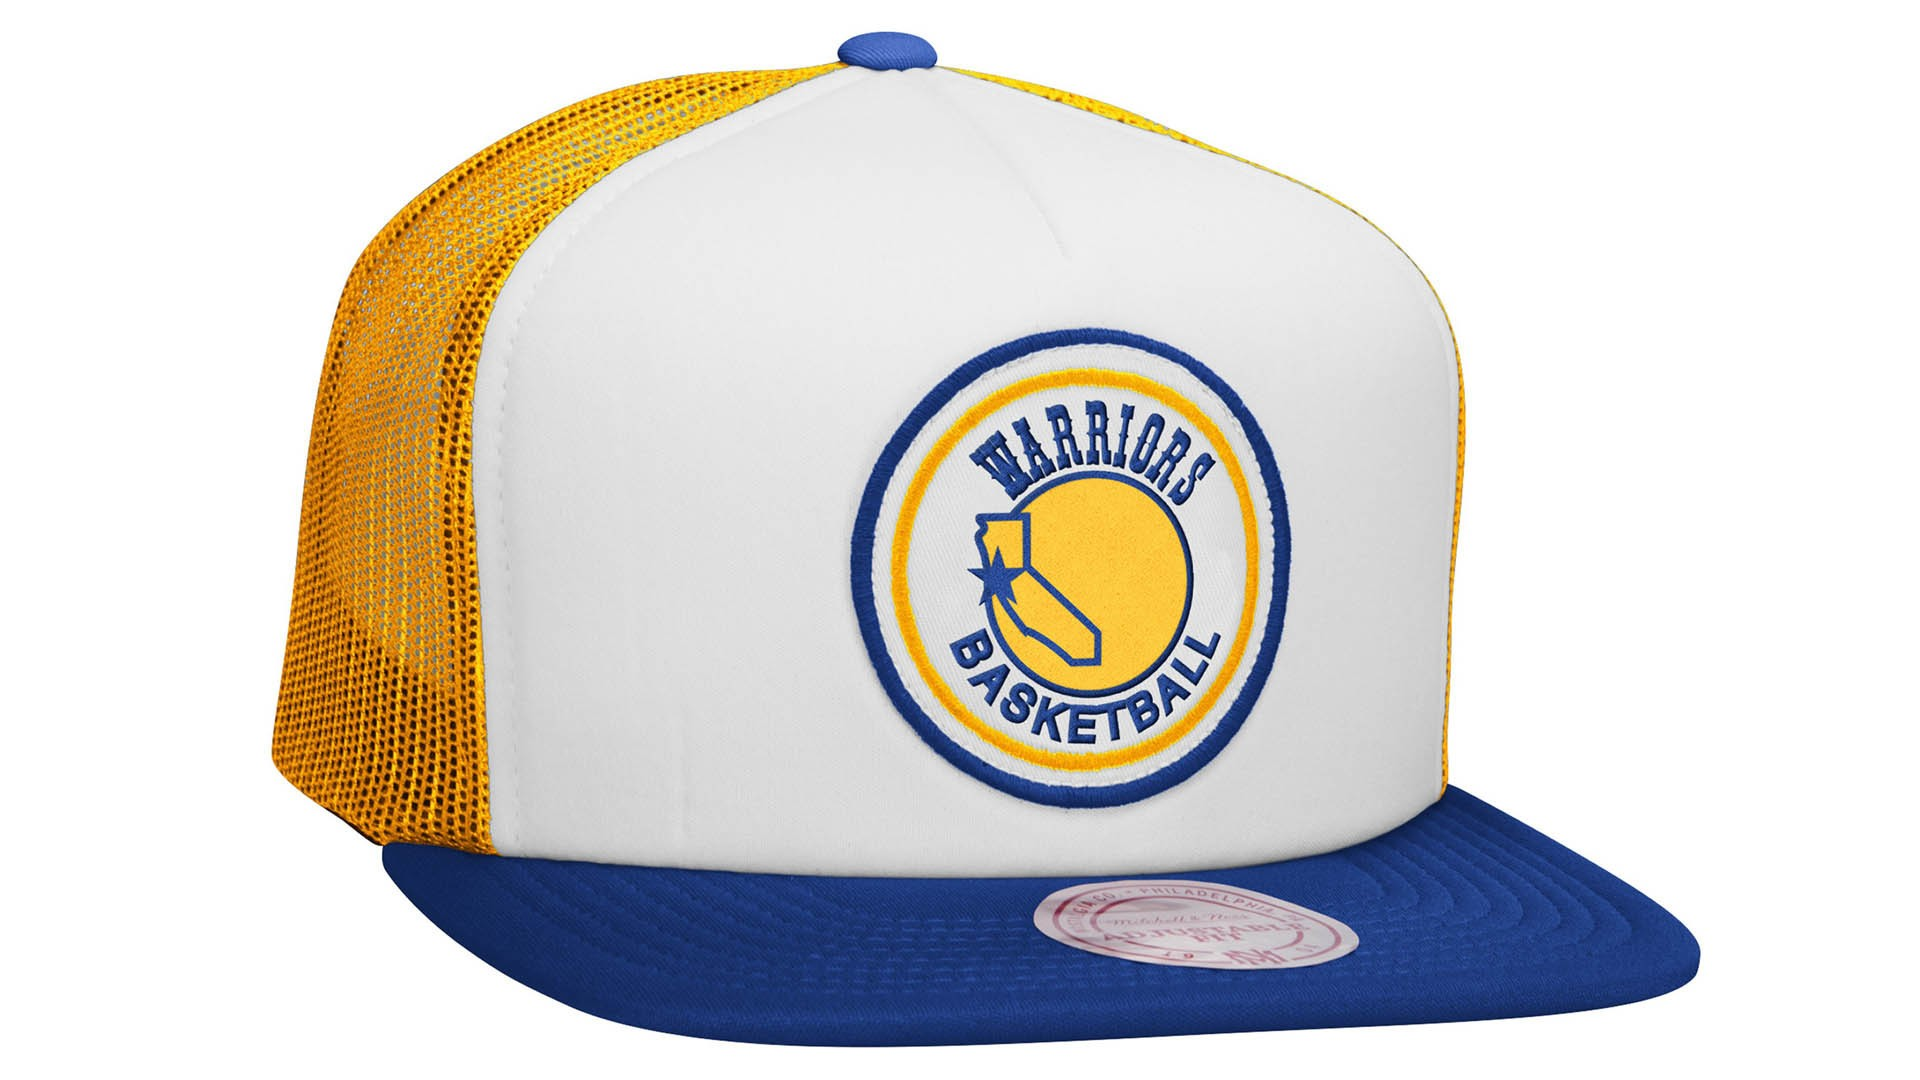 Golden State Warriors images